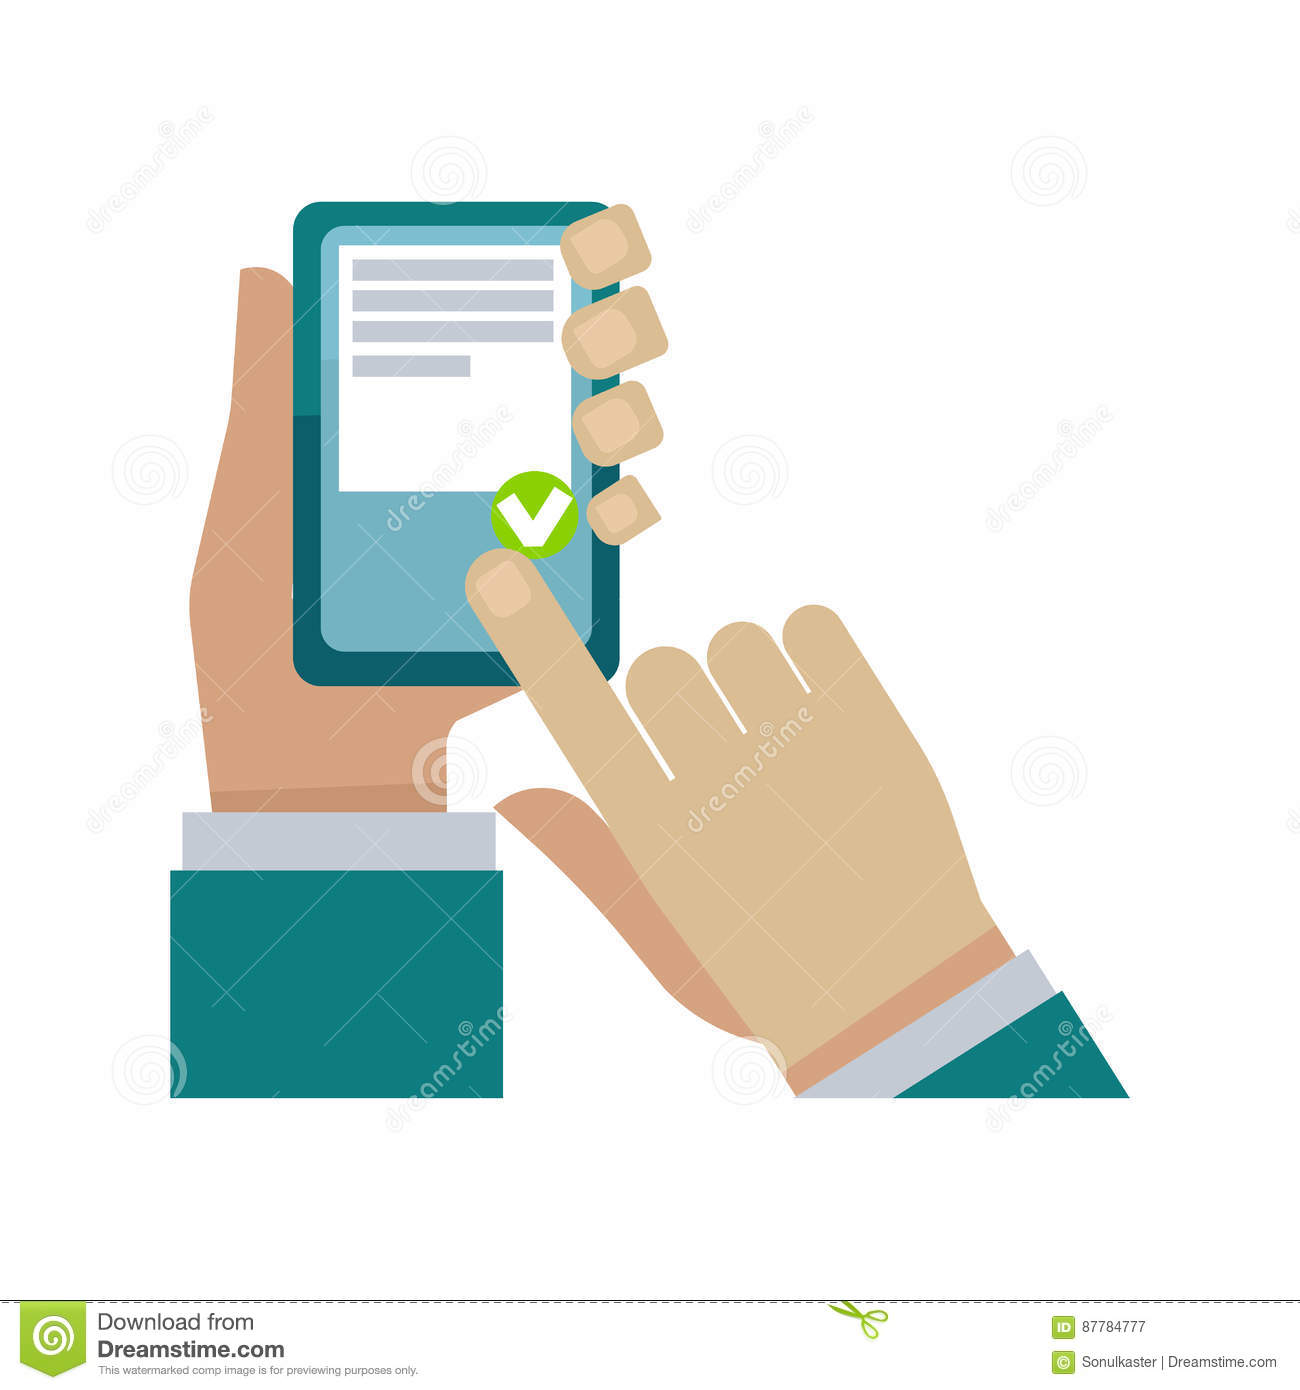 Human hand holding phone and choosing something on white